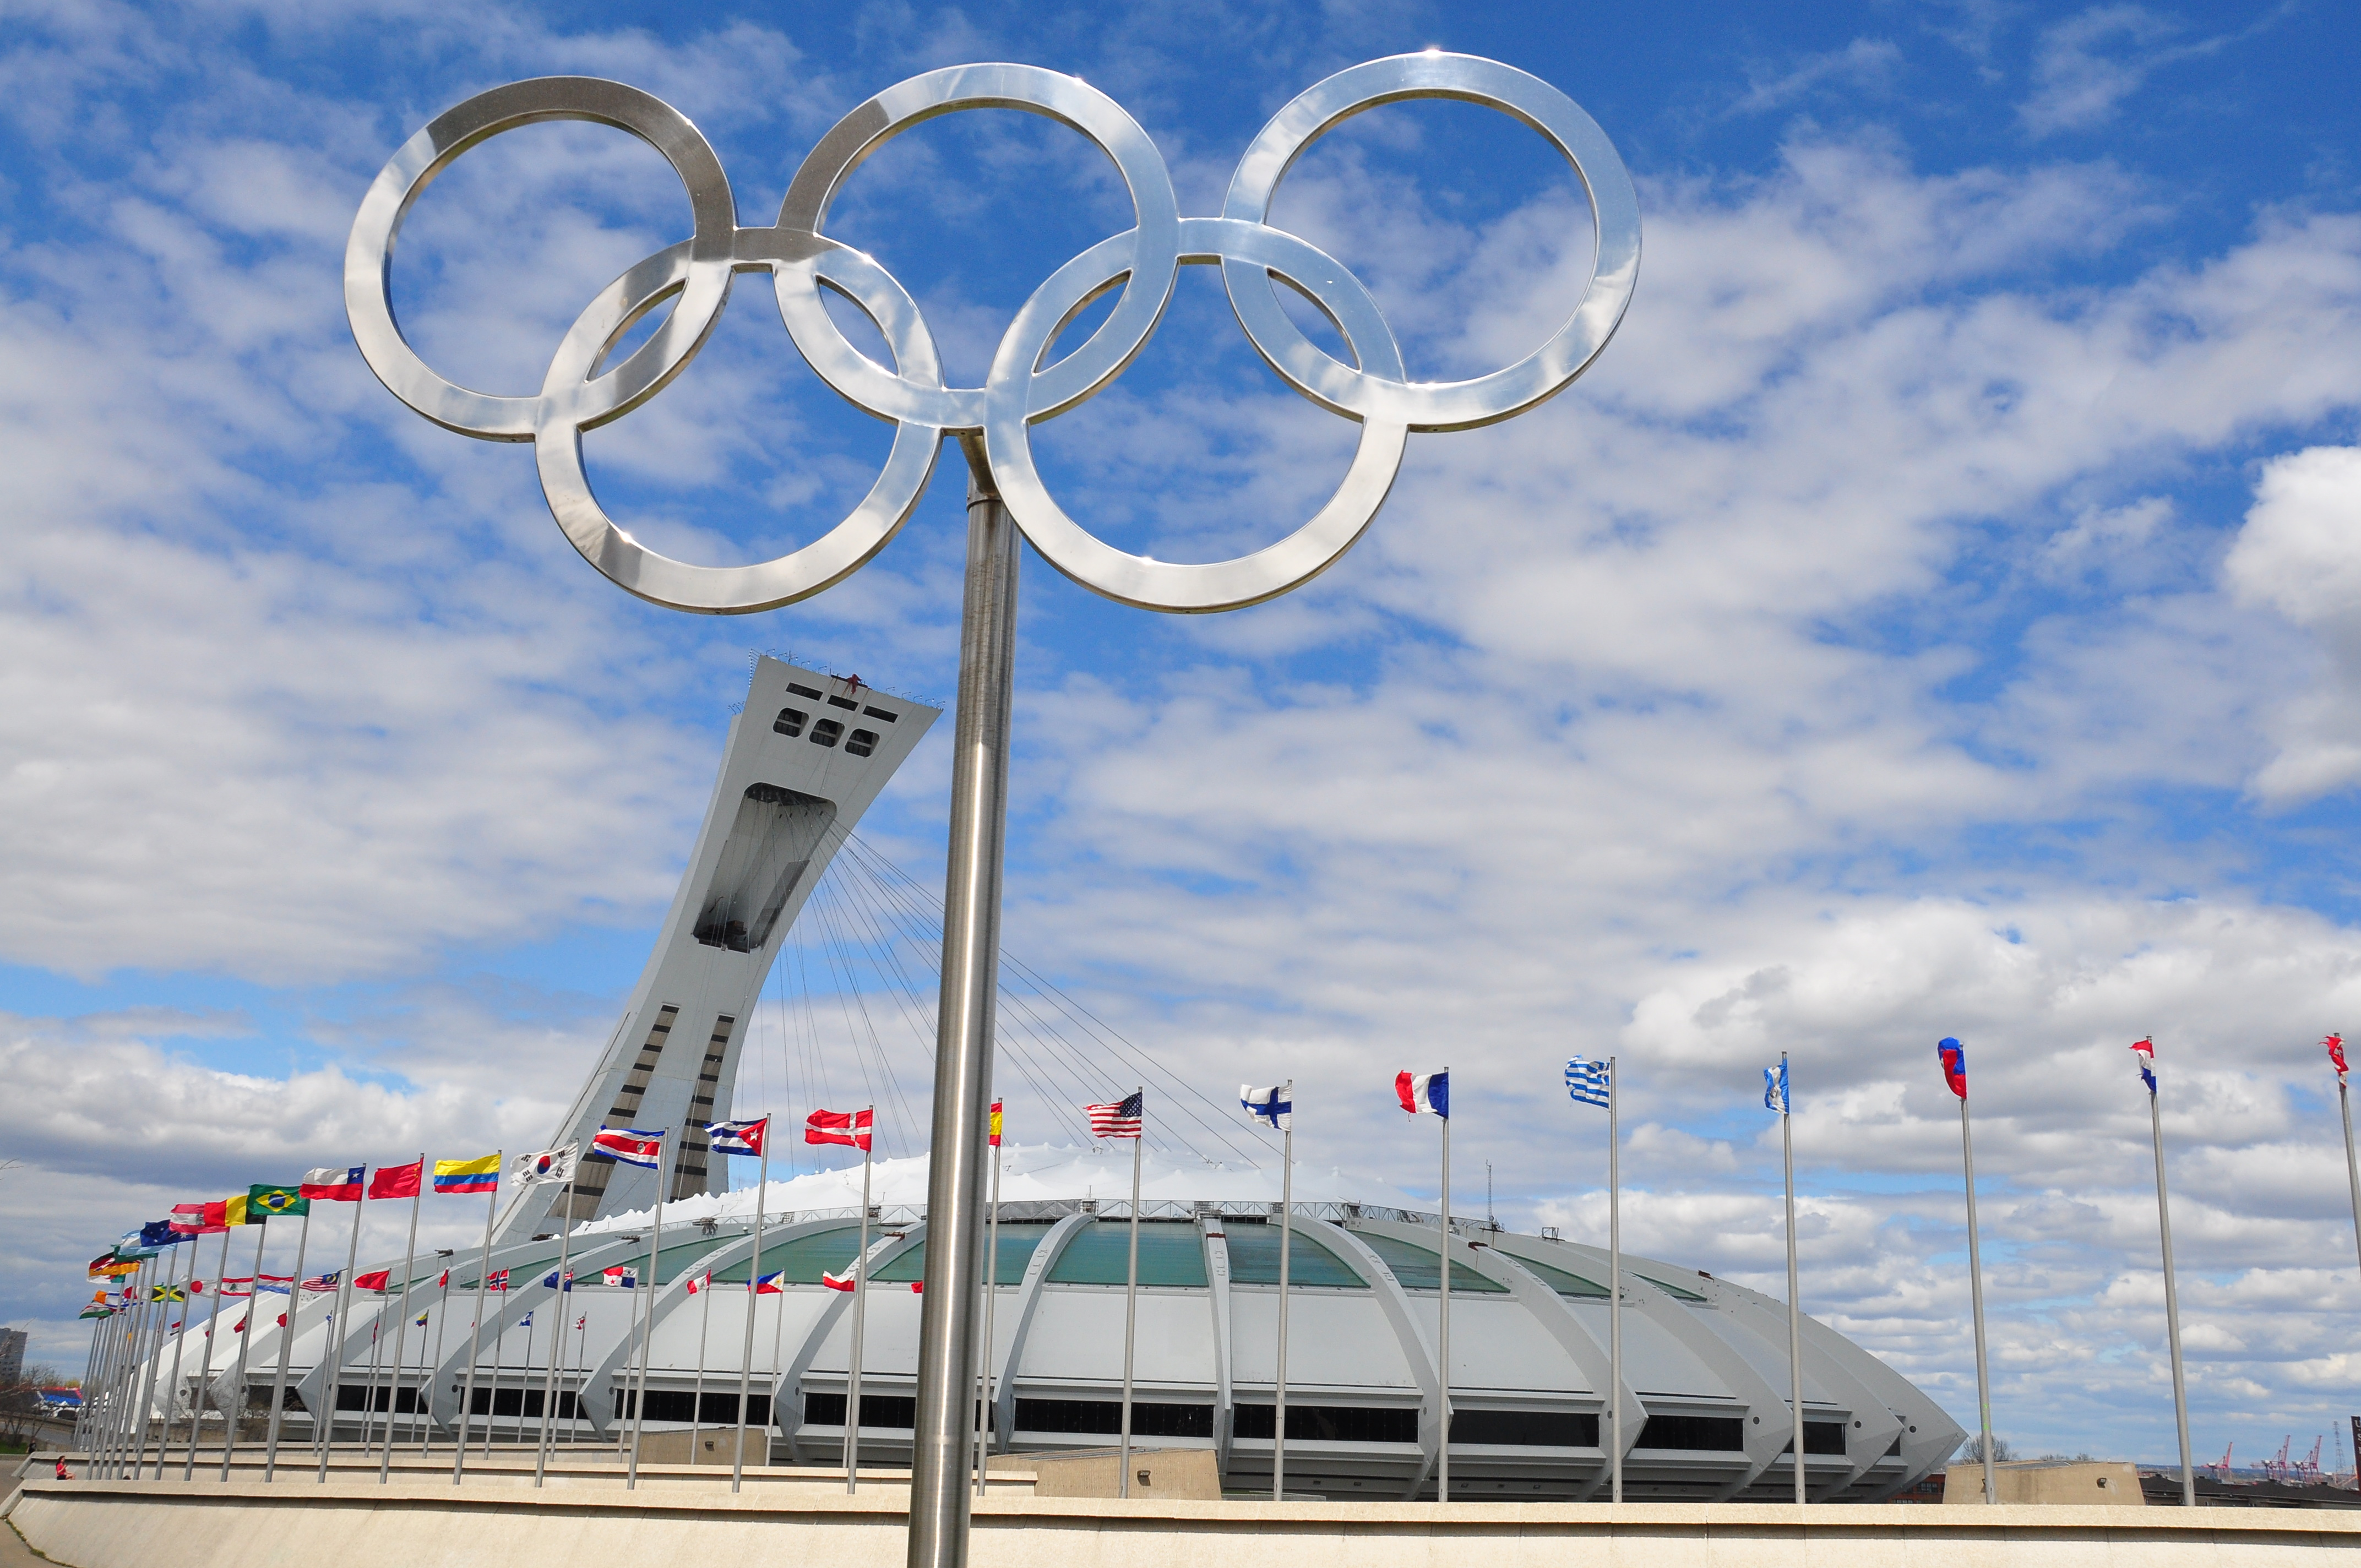 the olympic games benefit hosting country Because the economic impact of hosting the olympics tends to be less benefits of hosting the olympics from the games and spectators to not enter the country.